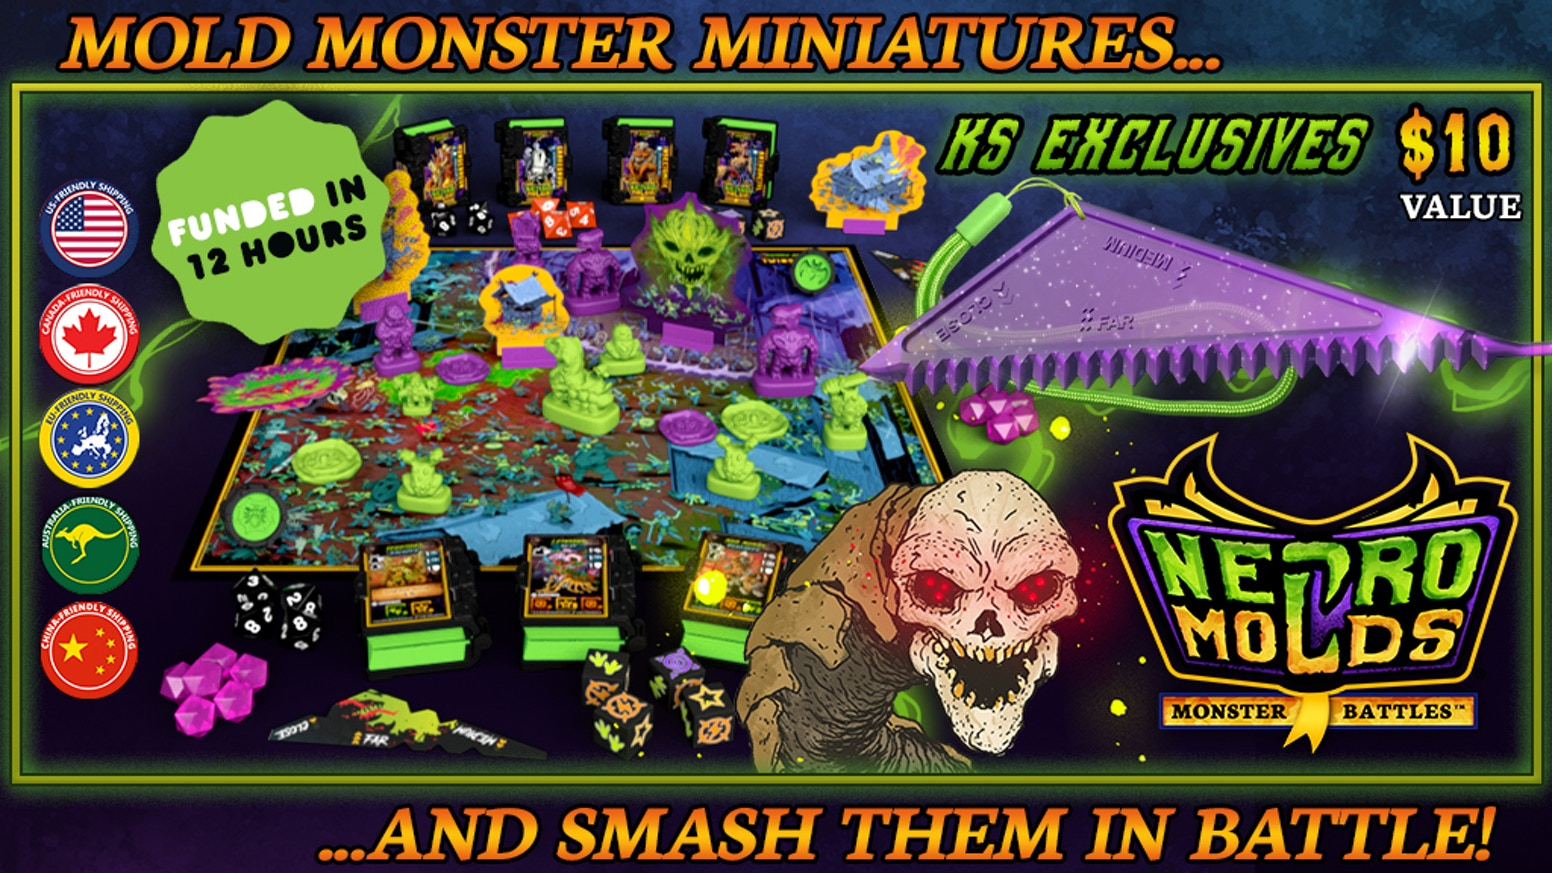 Mold, fight, and smash monster armies in this unique miniatures strategy skirmish tabeletop game for all ages!